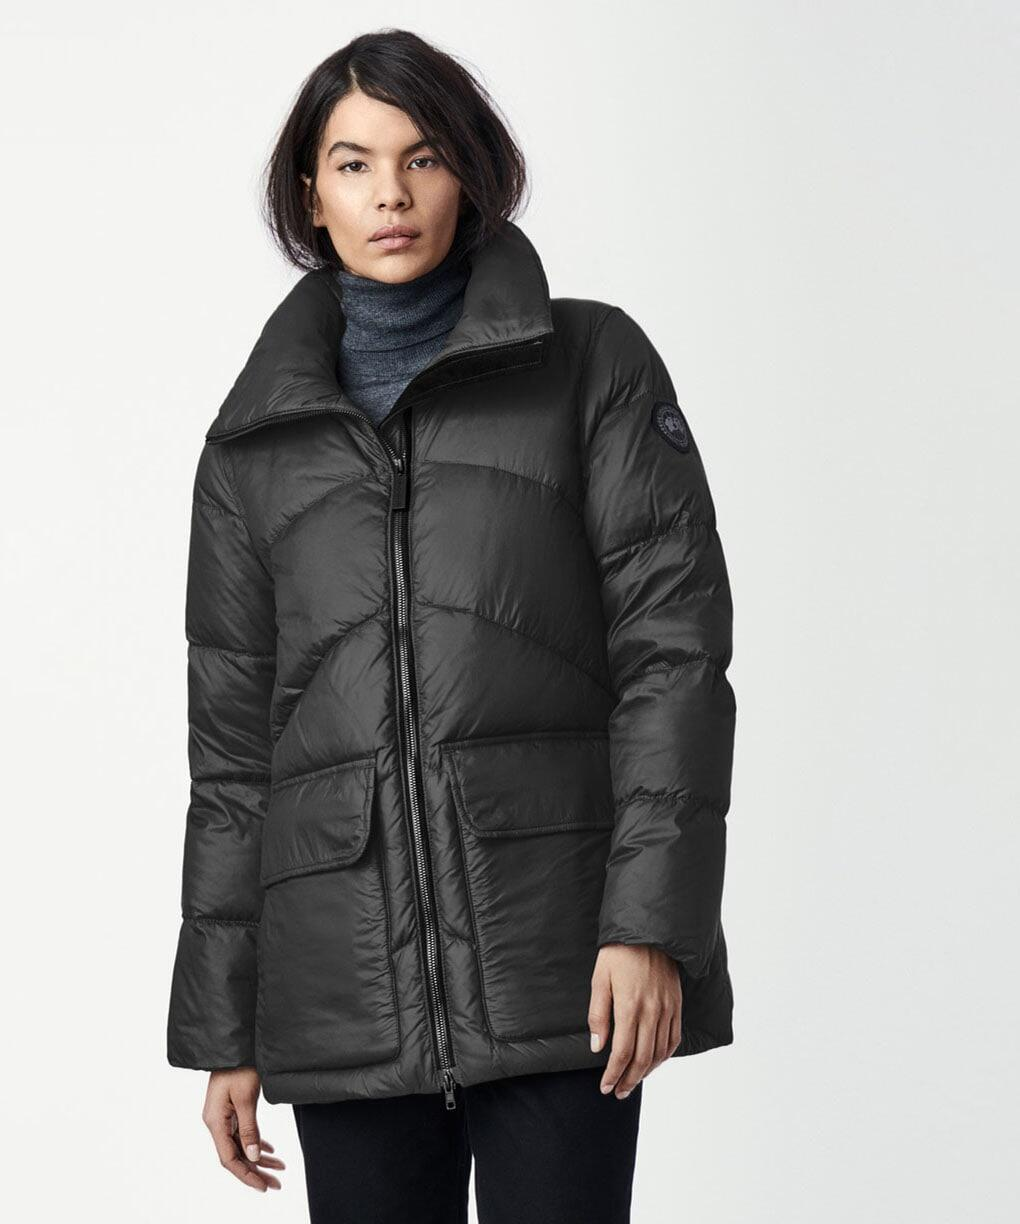 OCKLEY PARKA BLACK LABEL